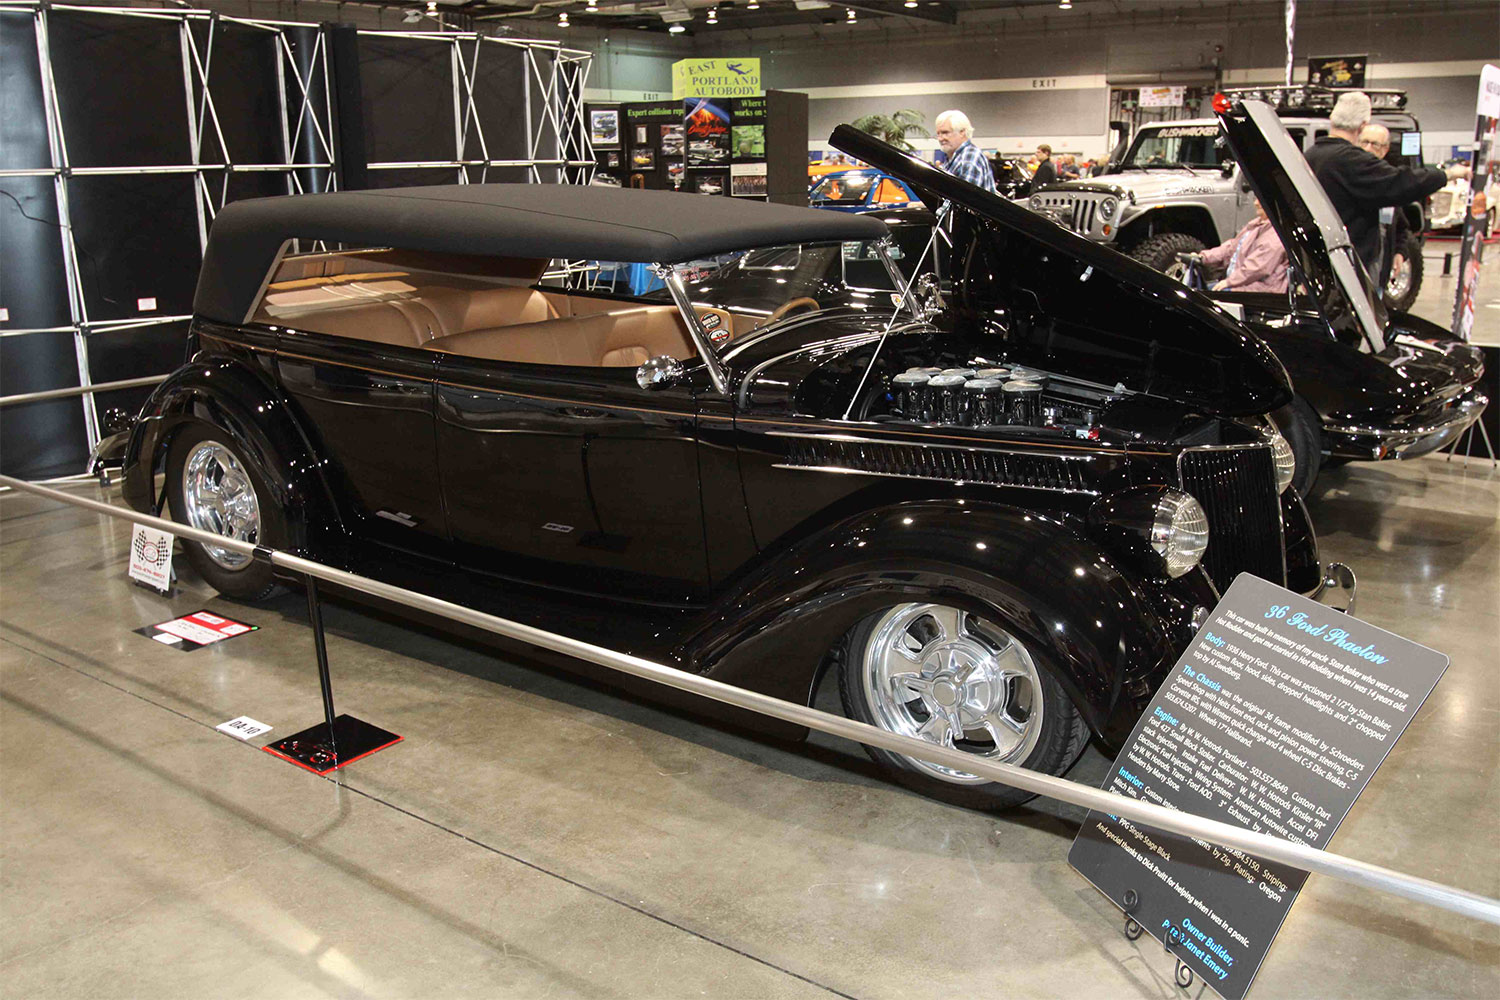 Pete & Janet Emery built this '36 as a tribute to Stan Baker, who originally sectioned the tub 2-1/2 inches. C5 Corvette suspension is used at all four corners along with Halibrand wheels. Power comes from a 427-inch small.